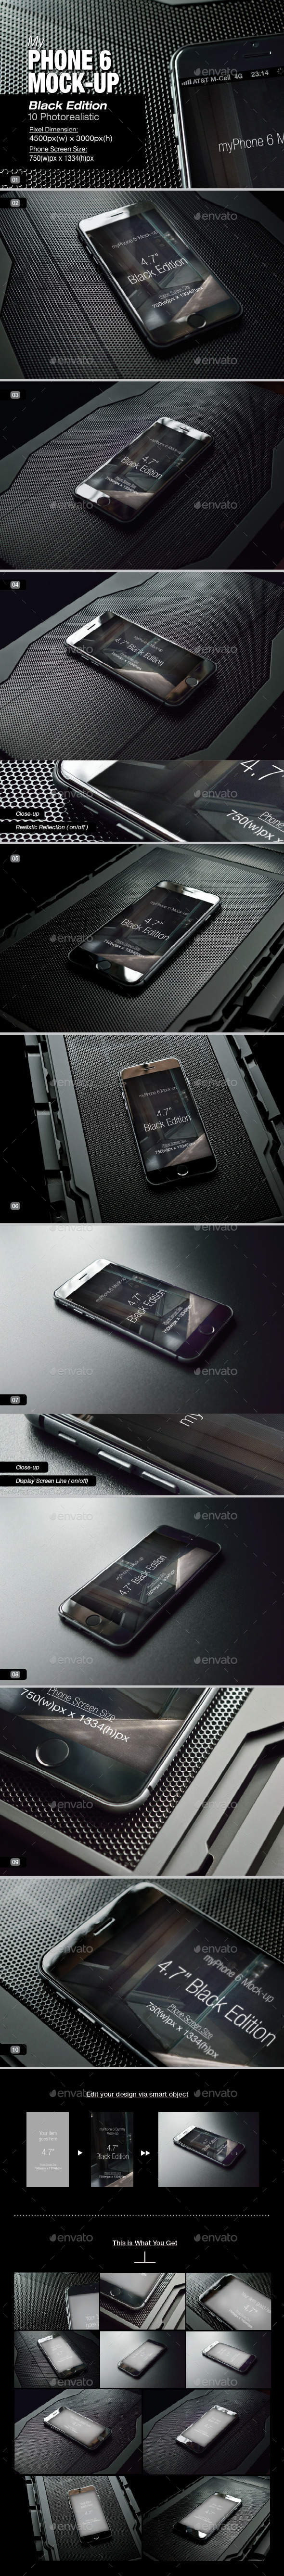 myPhone 6 Mock-Up v03 - Mobile Displays